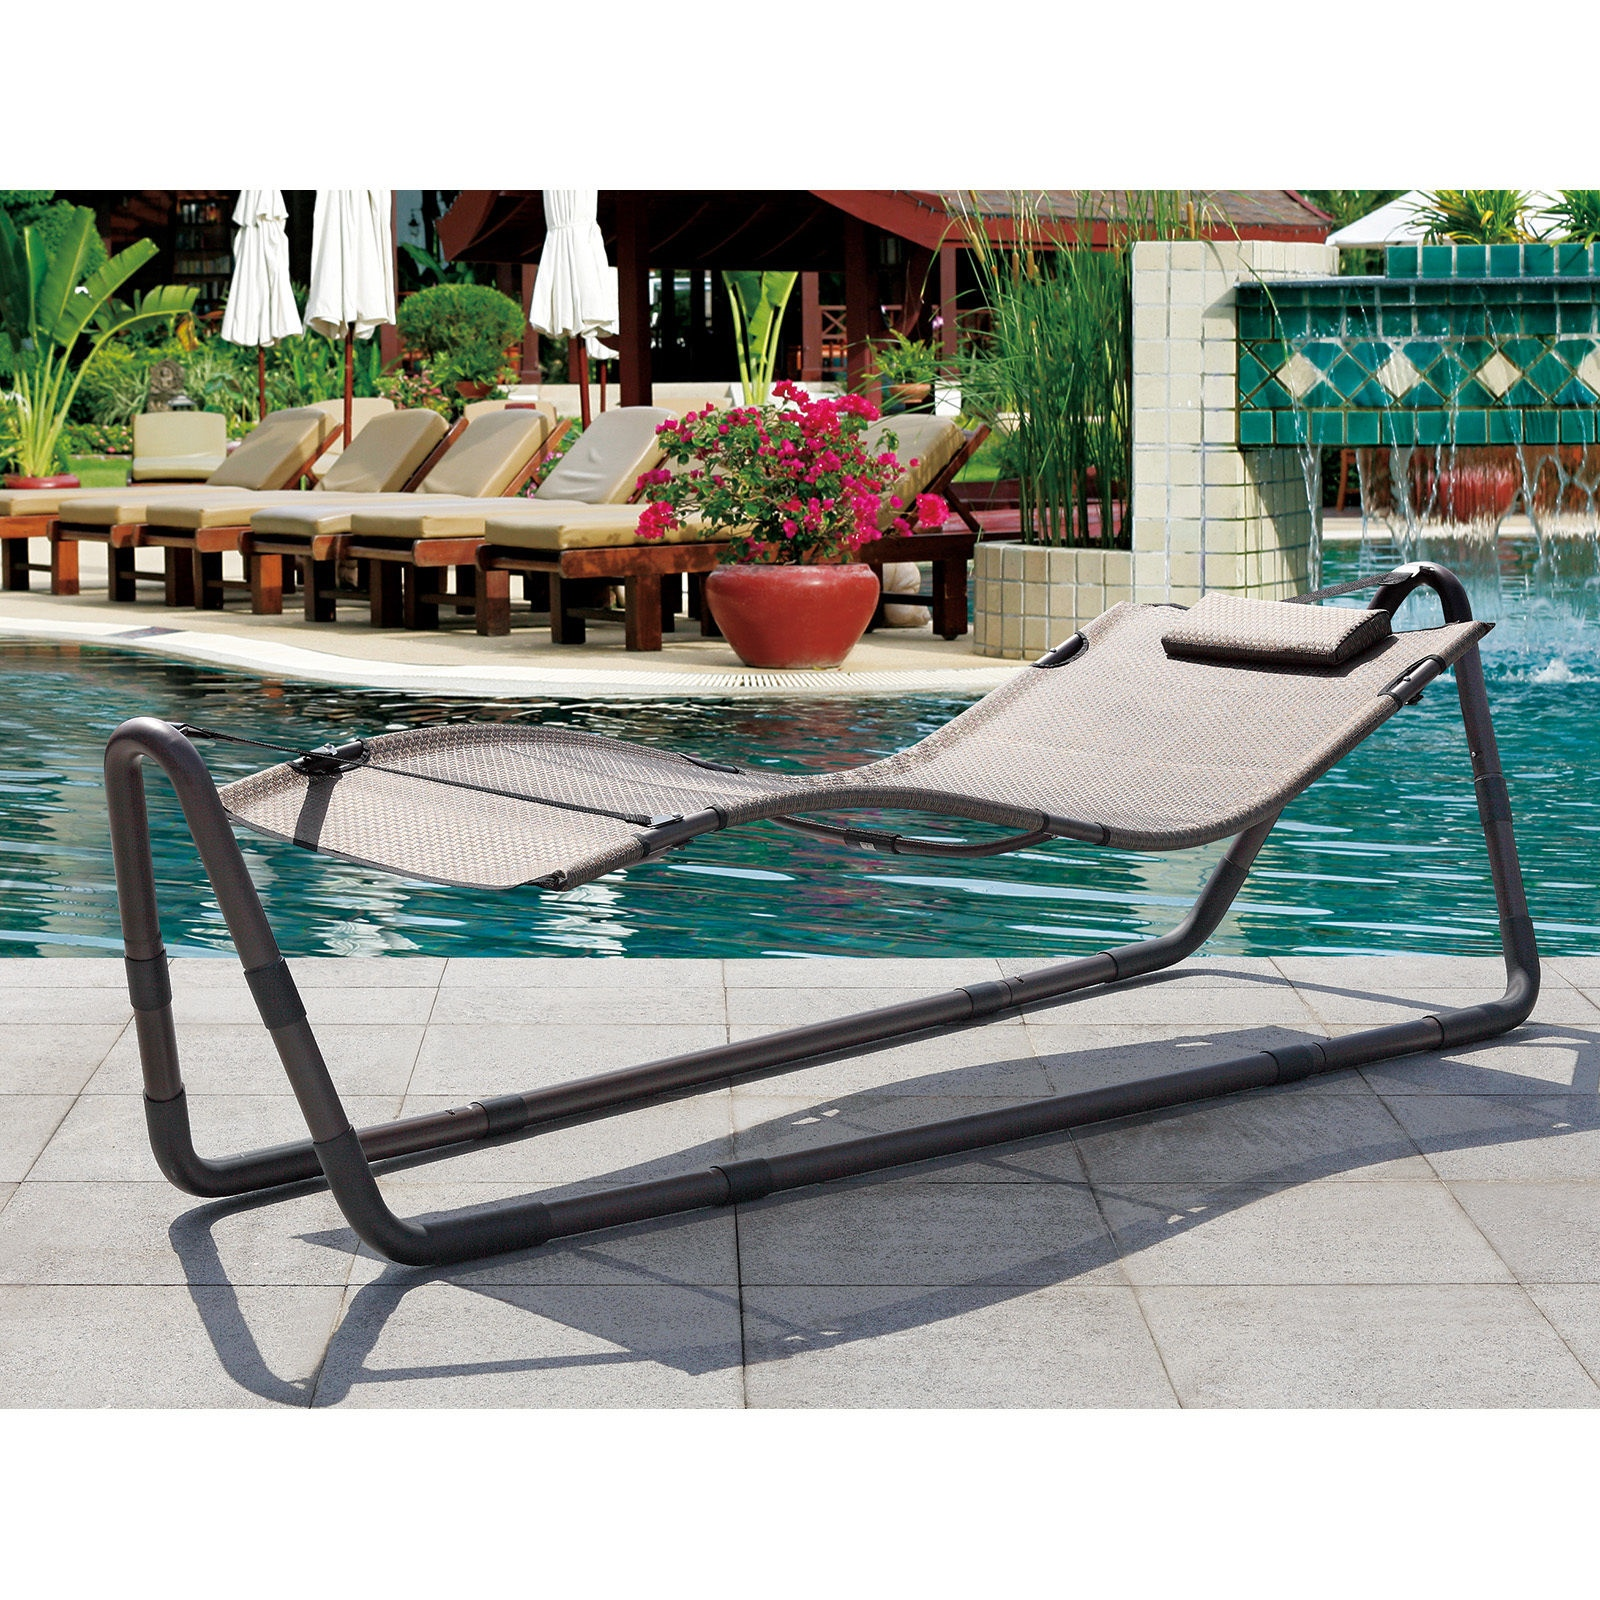 Modern Outdoor Patio Hammock Sun Bed Deck Pool Lounge Chair